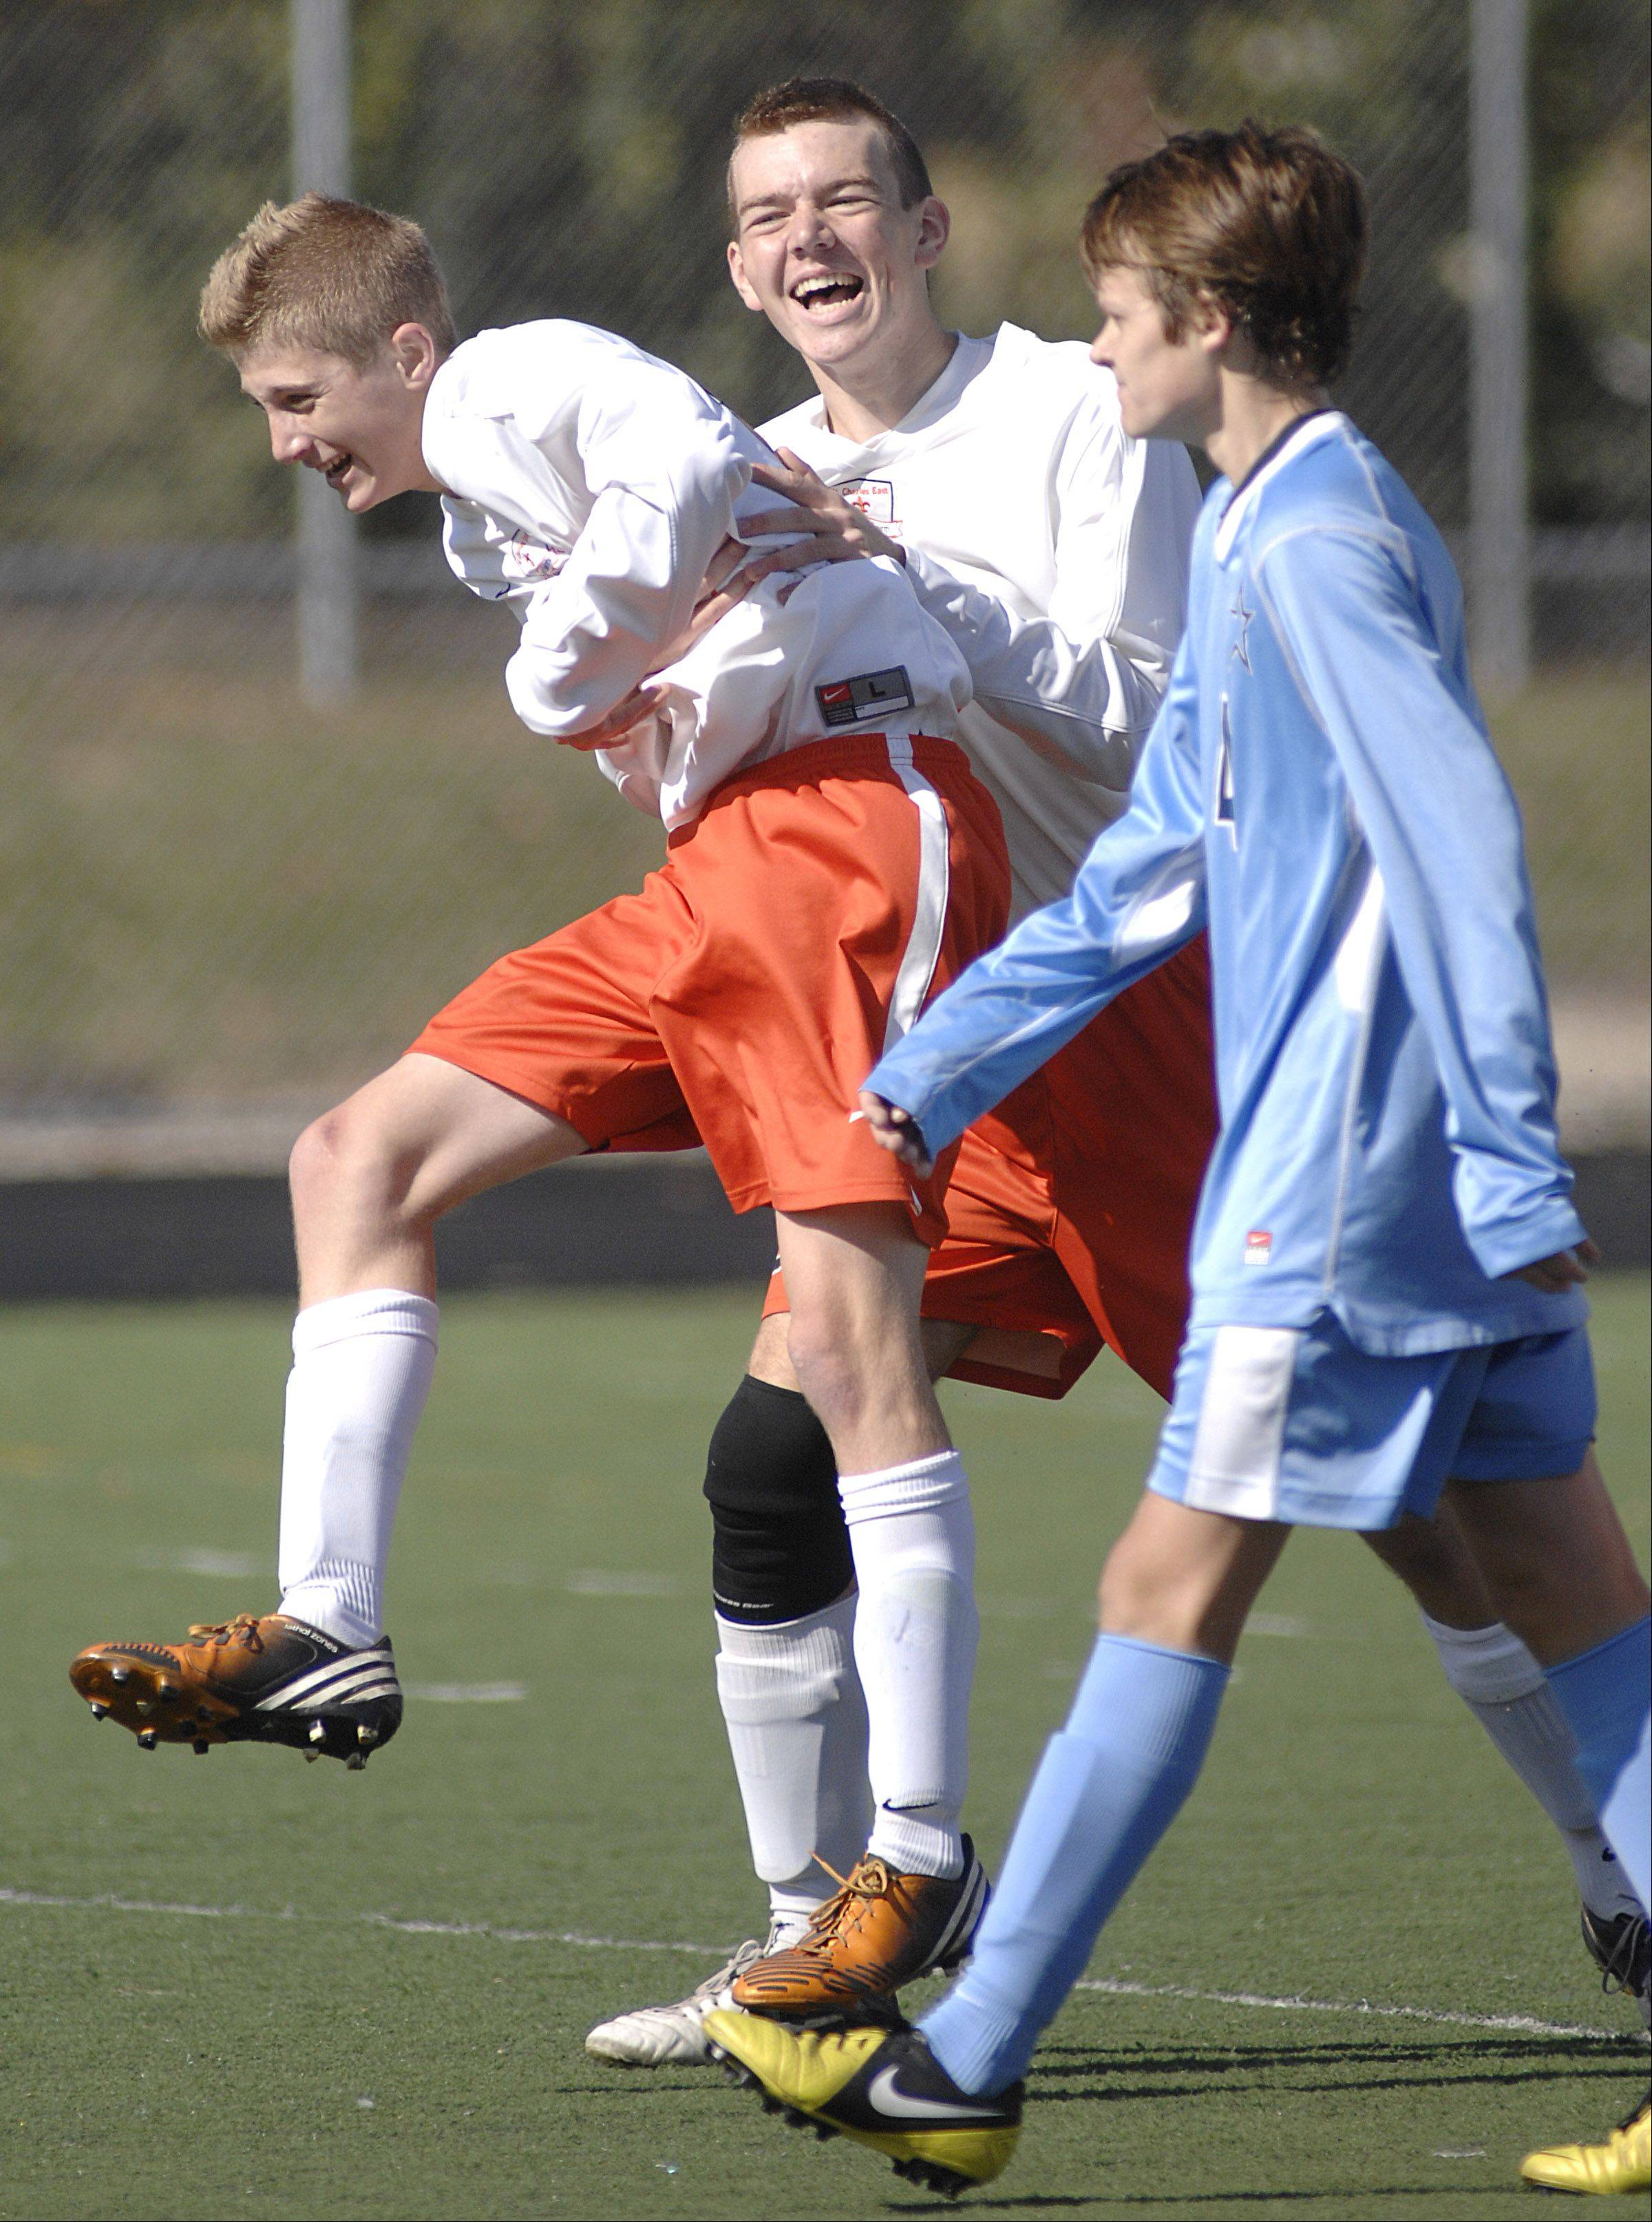 St. Charles East's Andrew Shone, left, is lifted by teammate Brandon Villanueva after scoring a goal in the final seconds of the first half Saturday.